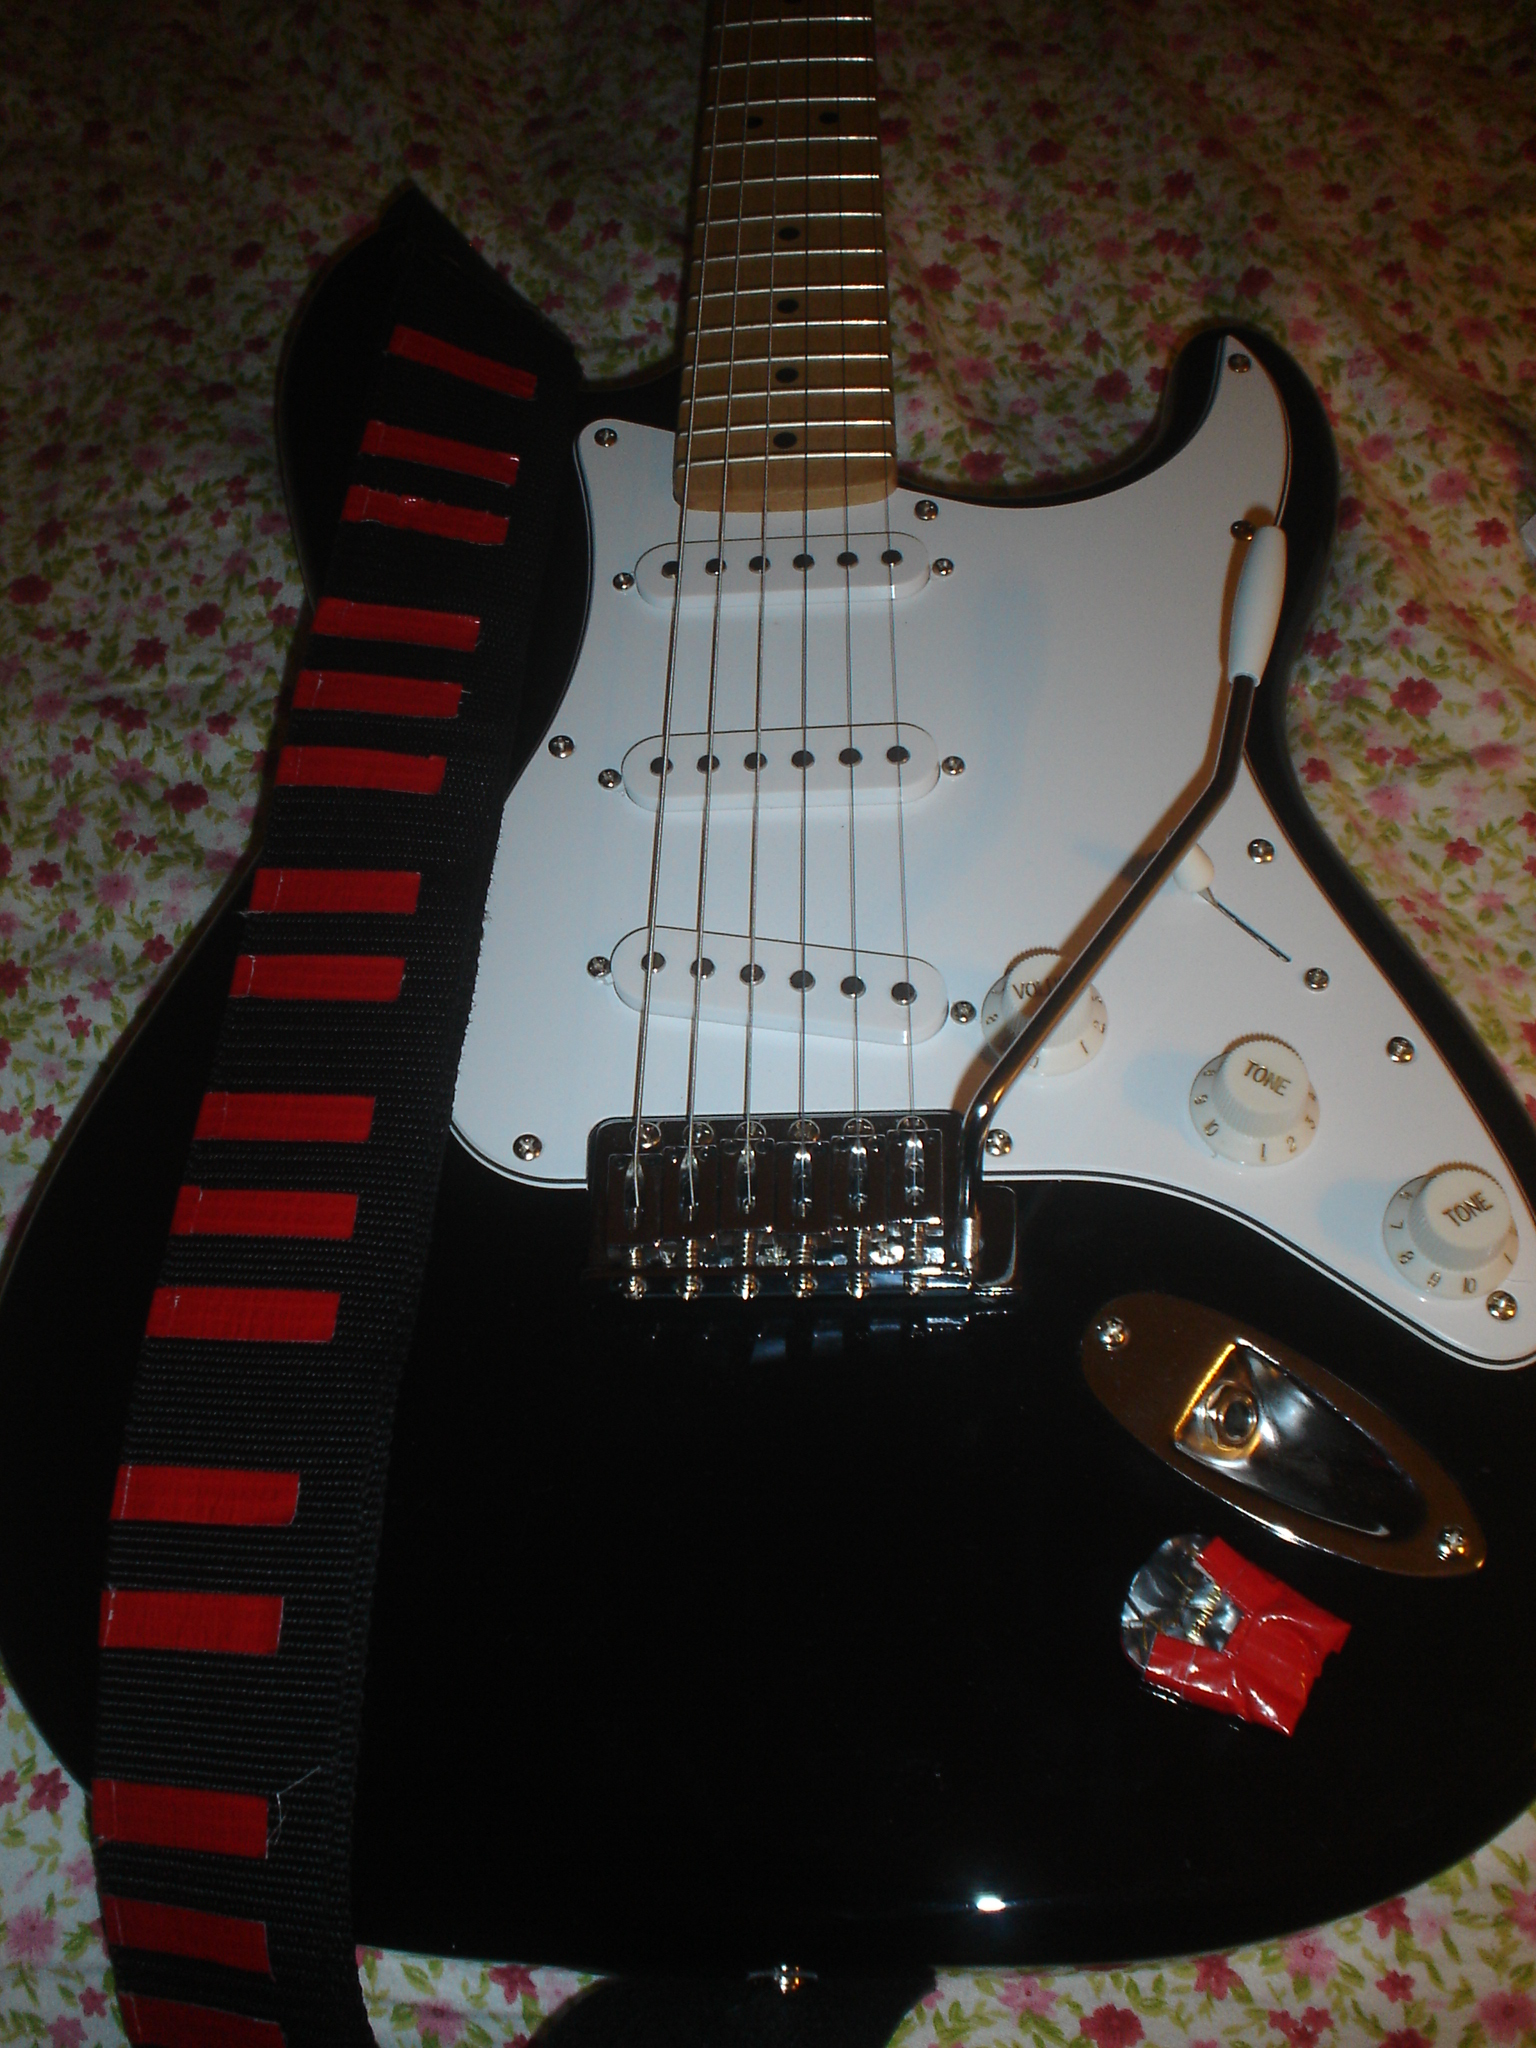 Stick-on Duct Tape Guitar Pick Holder